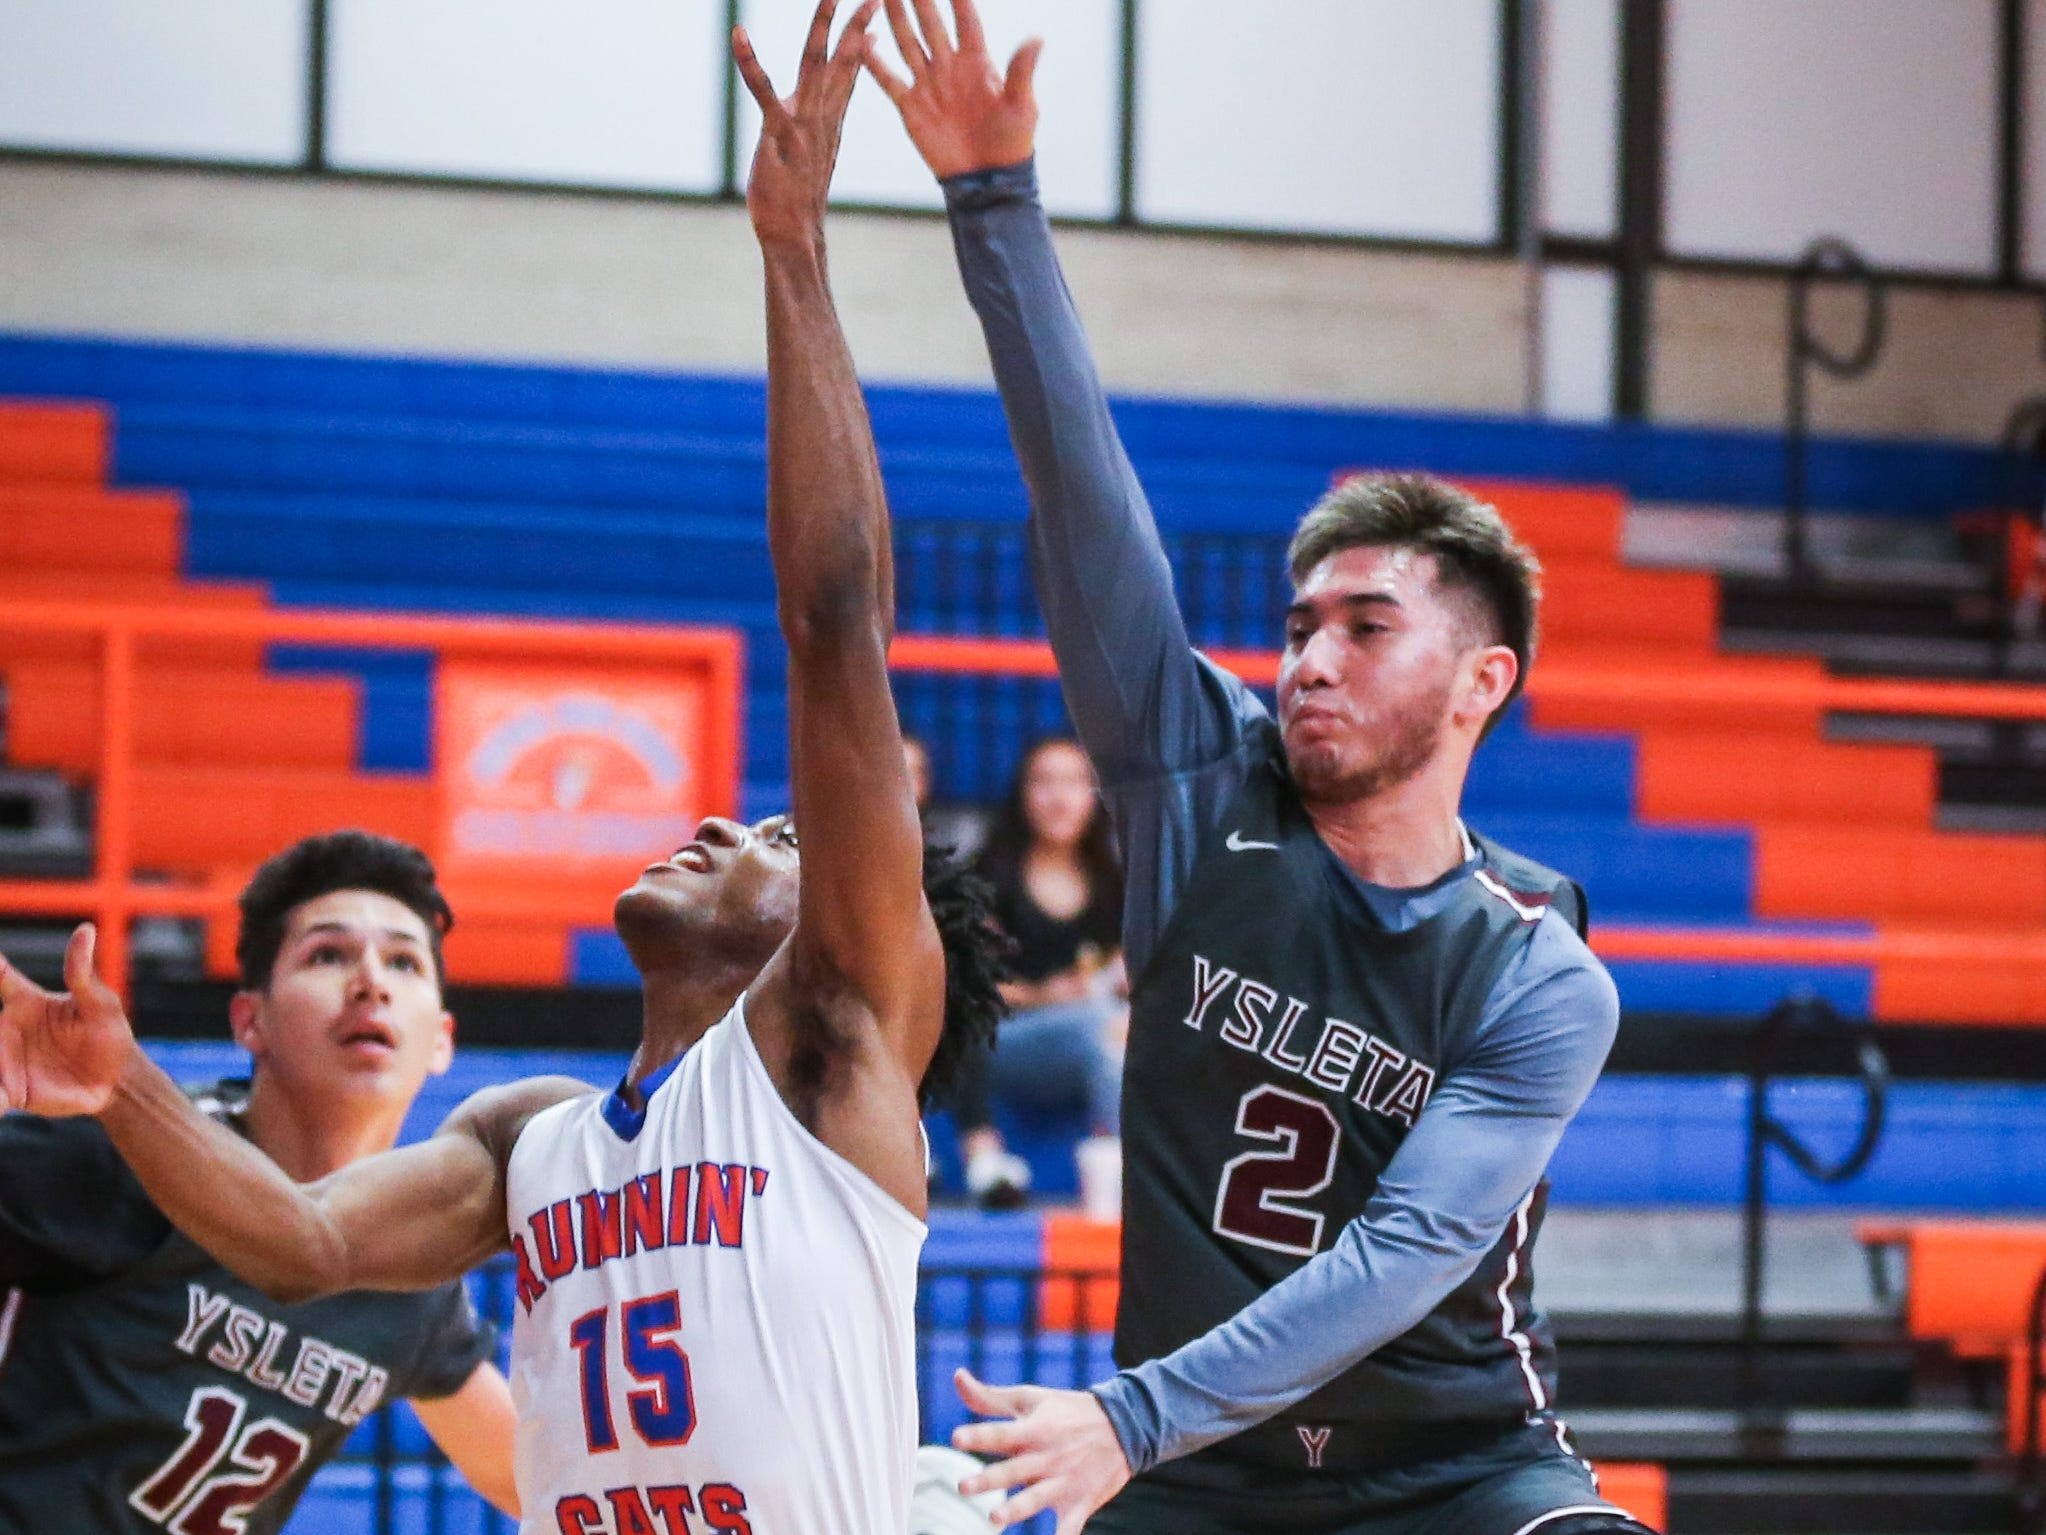 Central's Michael Bonner attempts to shoot the ball as Ysleta blocks during the Doug McCutchen Basketball Tournament Thursday, Nov. 29, 2018, at Central High School.